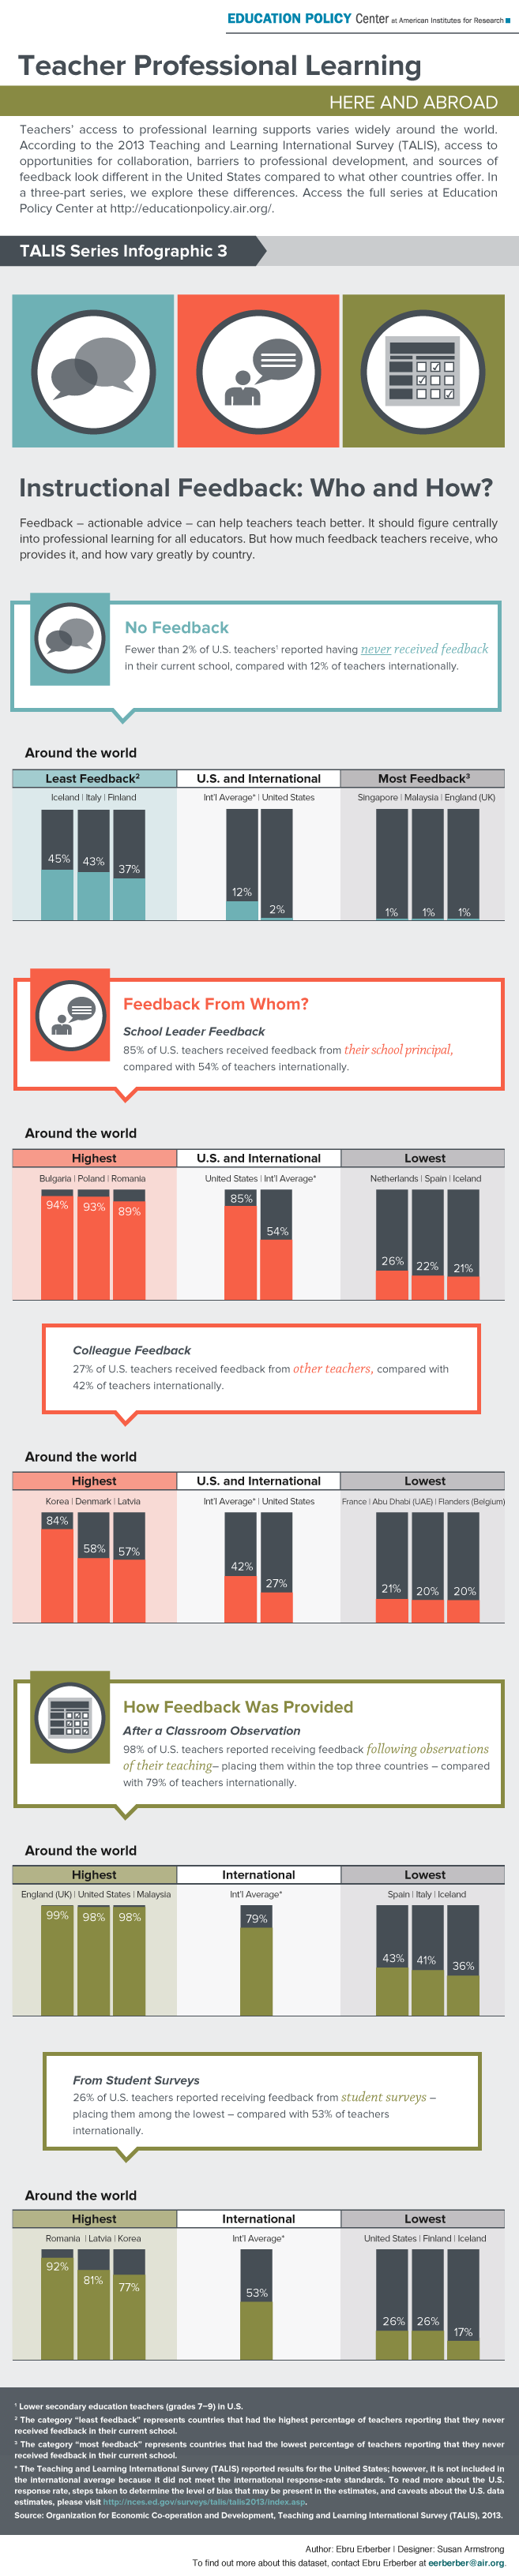 Infographic: The Who and How of Instructional Feedback